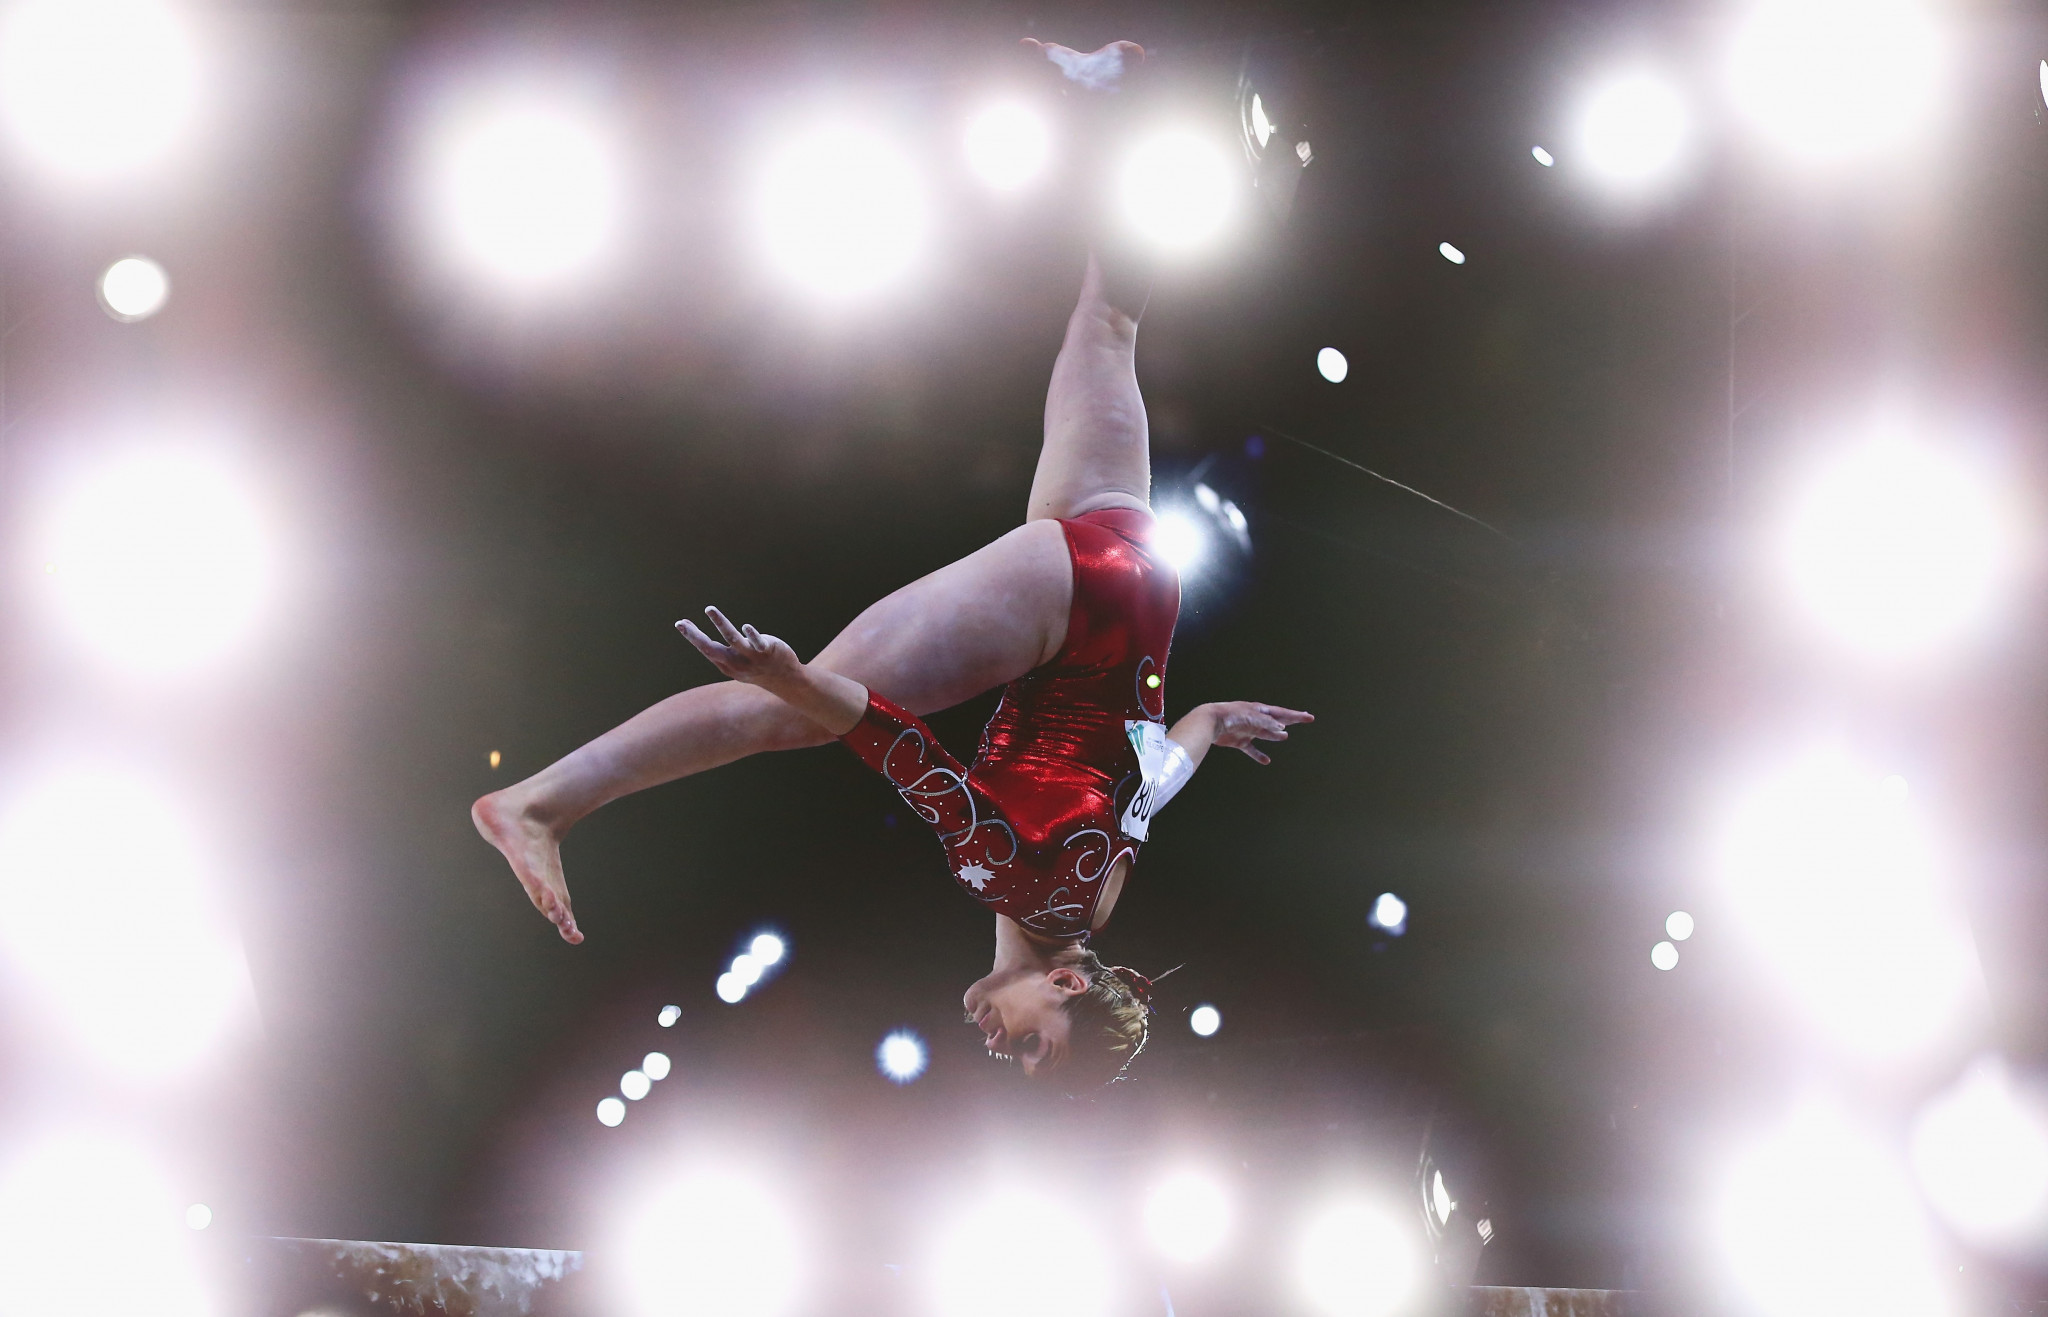 Gymnastics Canada pulls out of final Tokyo 2020 qualifier in Rio citing COVID-19 concerns